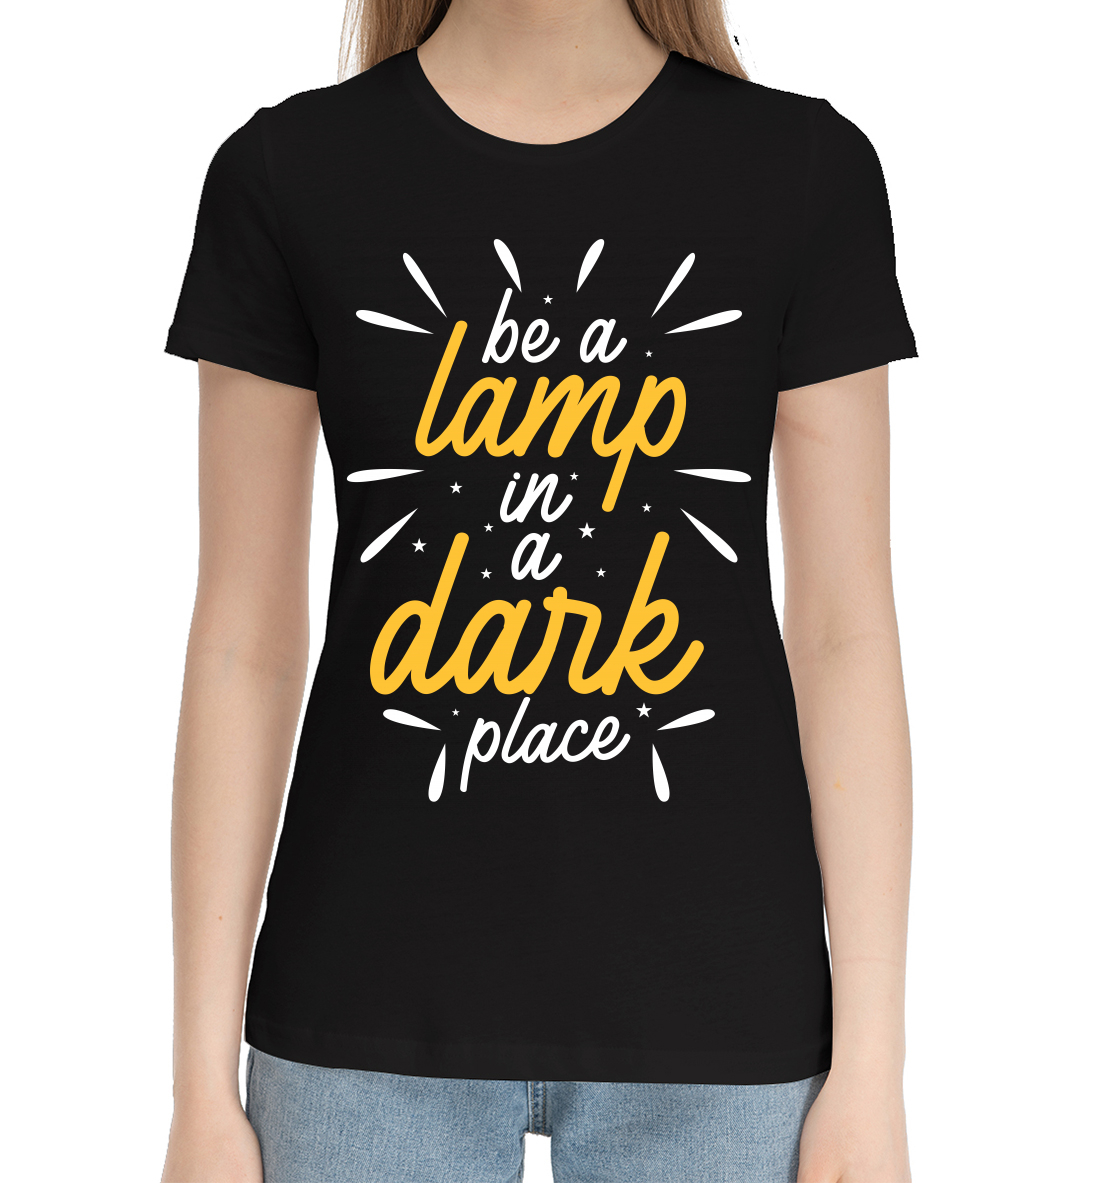 Фото - Be a lamp in a dark place nancy degenhardt a place to be